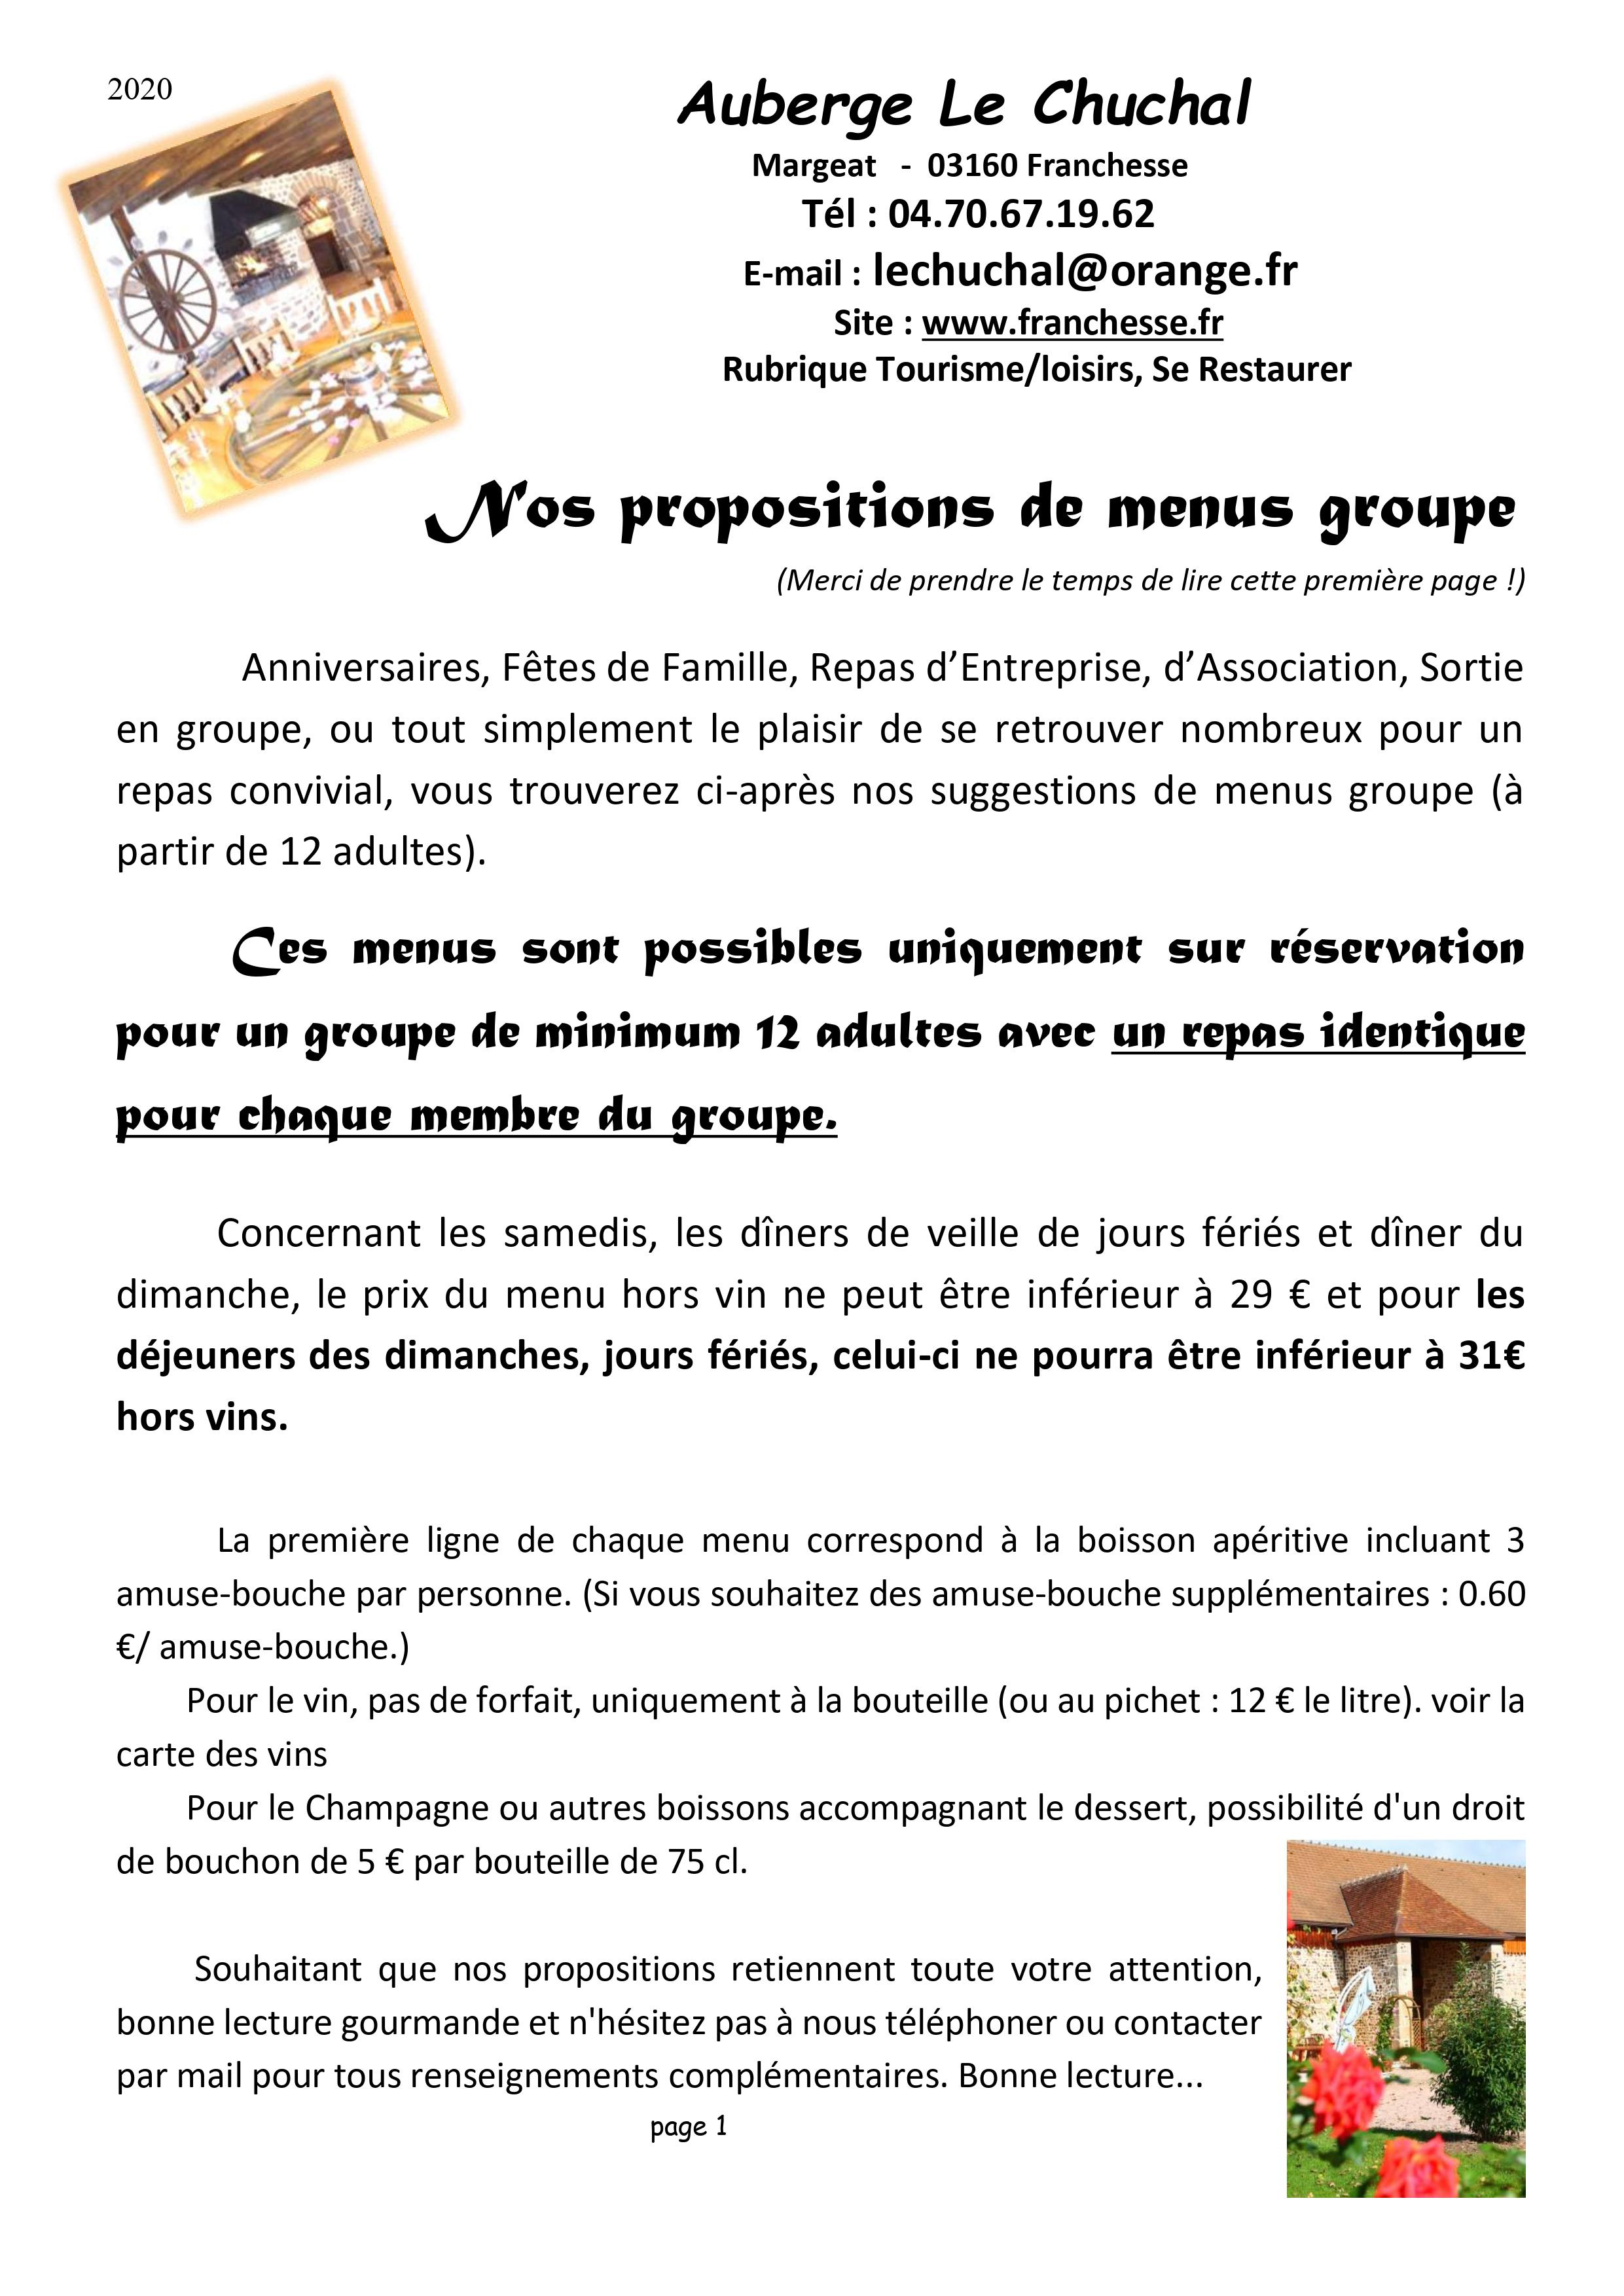 Propositions menus groupe 2020 Page1